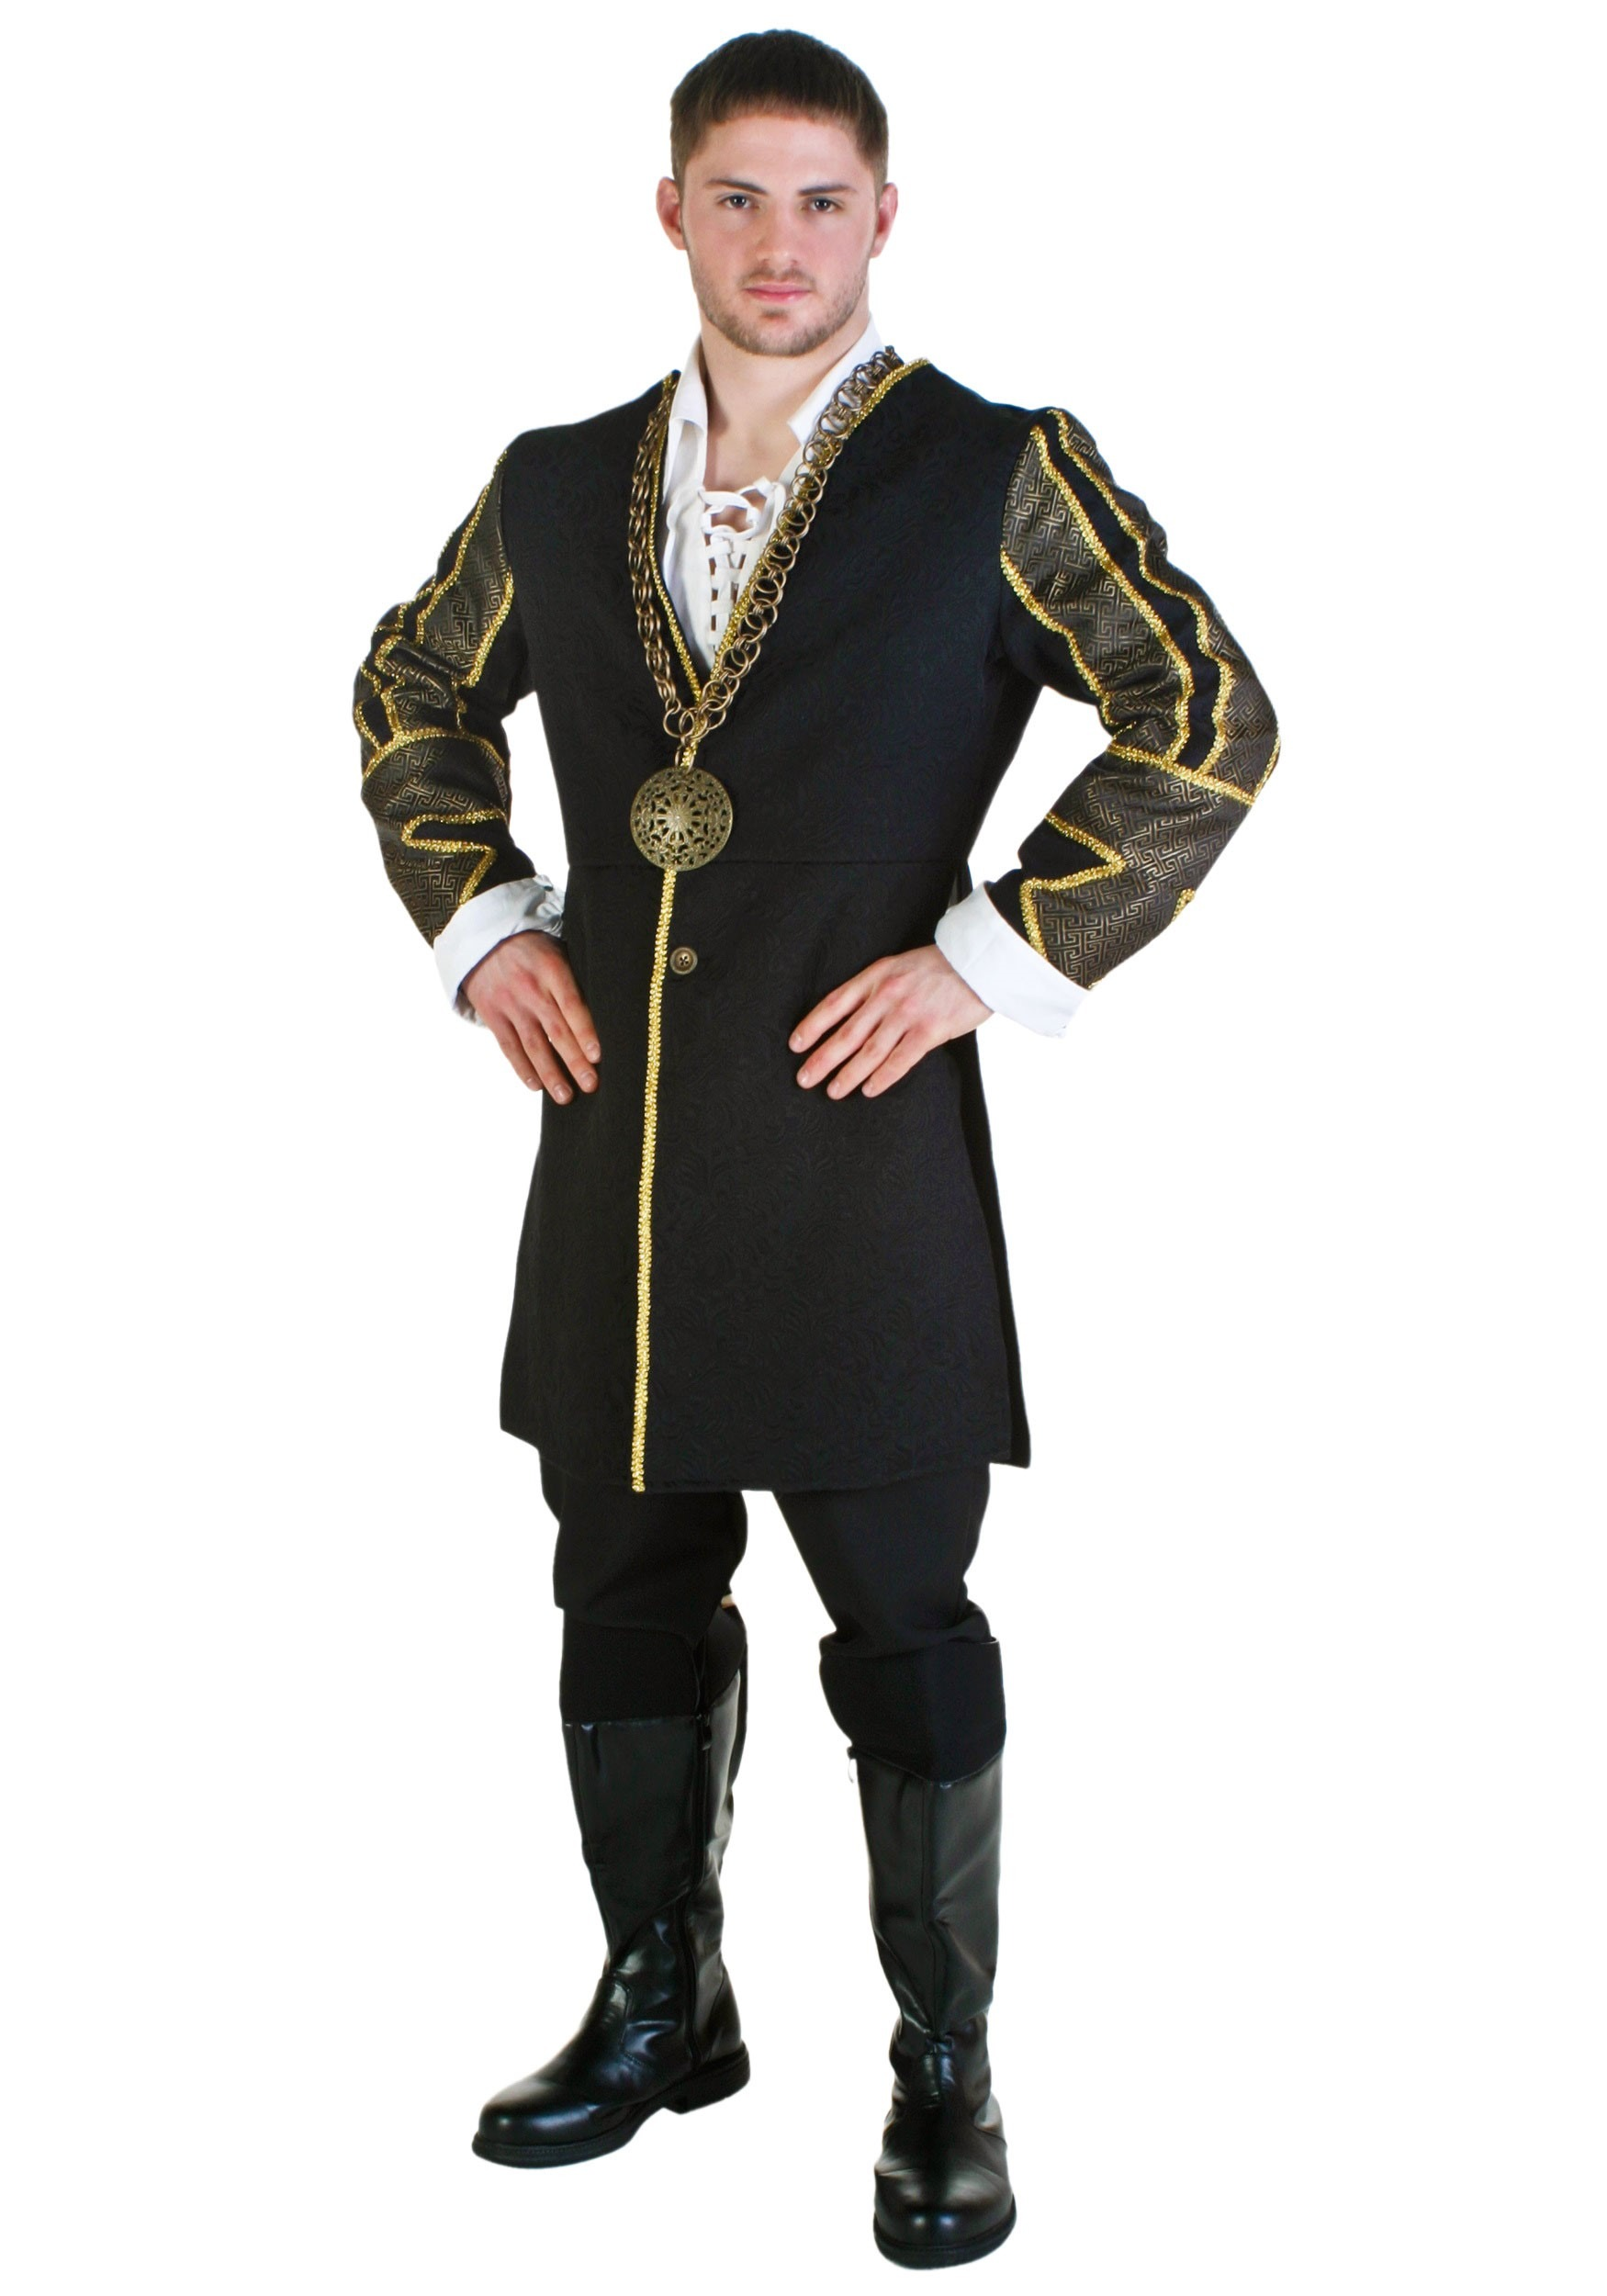 King and Queen Costumes - Royal King Halloween Costume